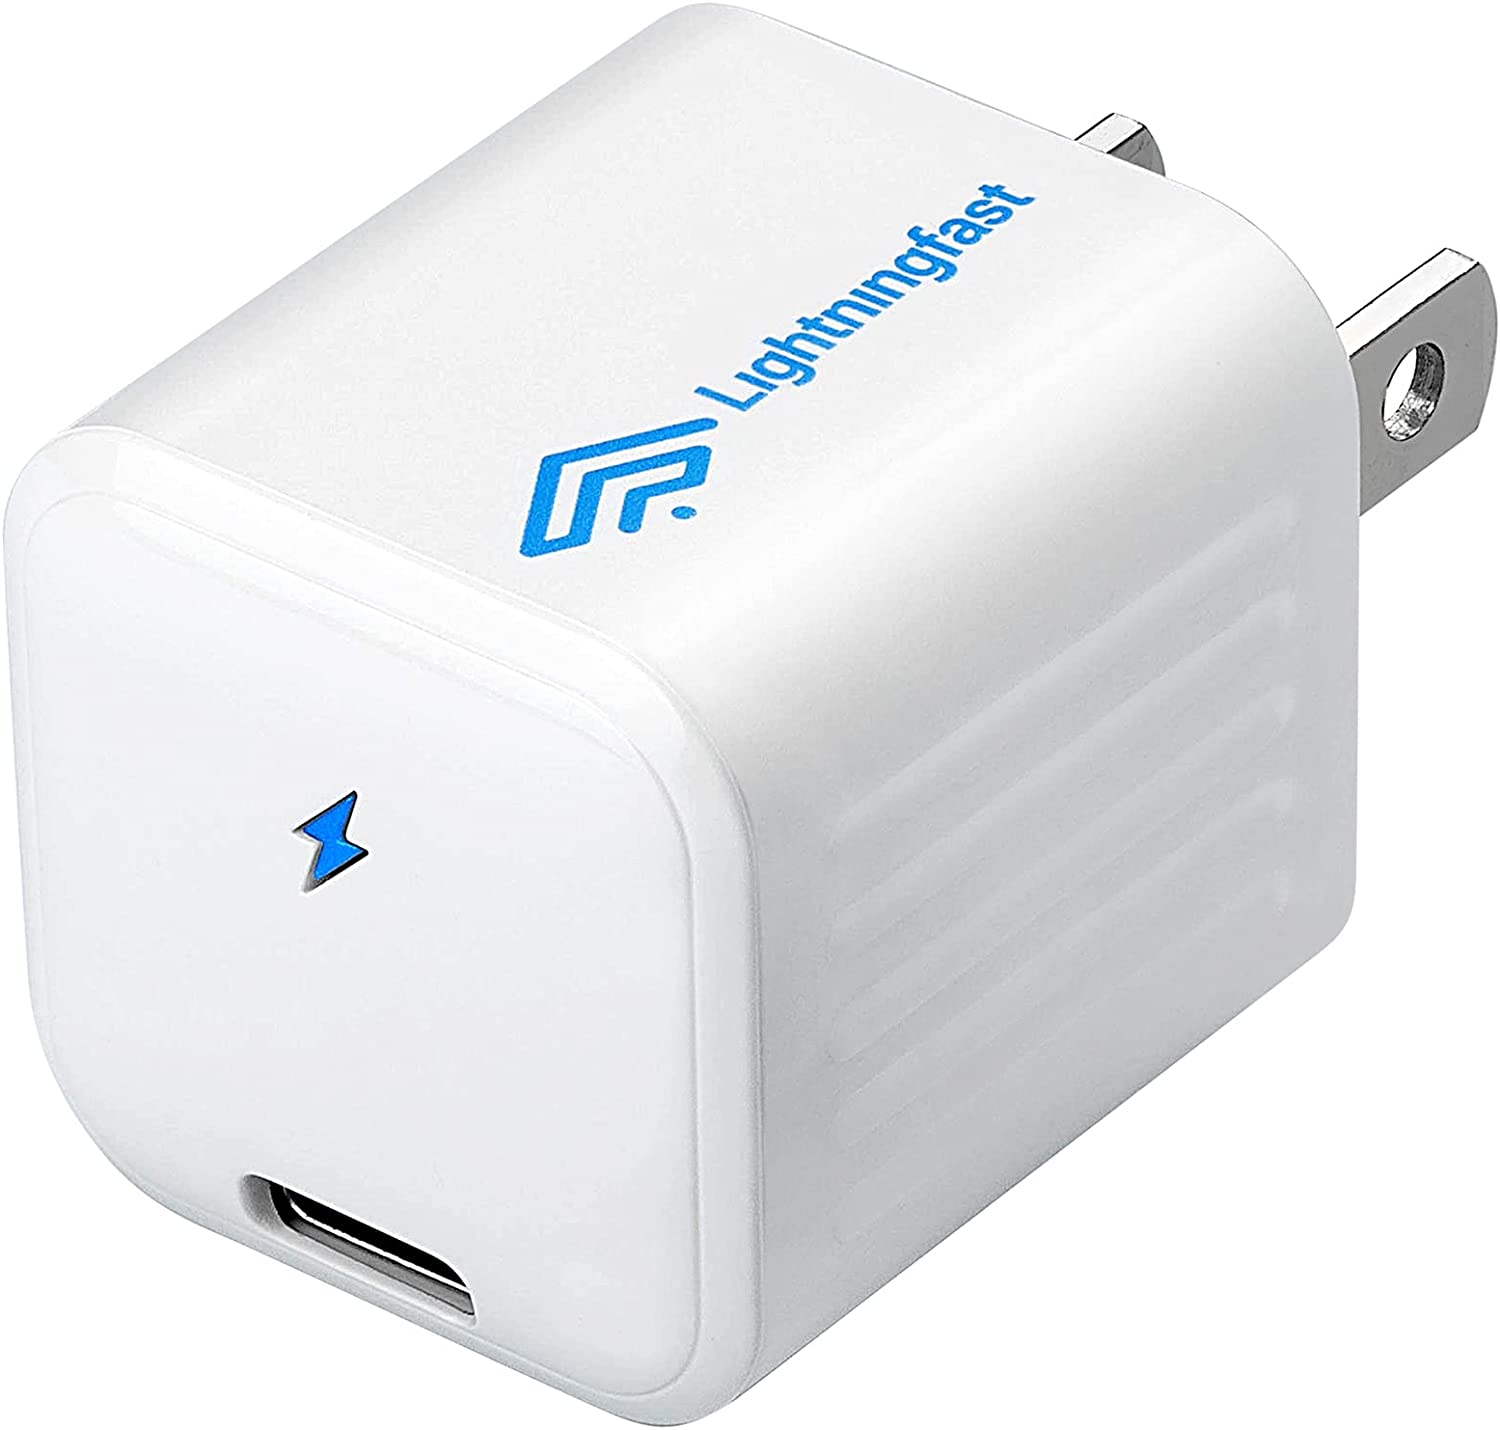 20W Fast Charging Block Adapter - USB Type C Wall Charger - Compatible Apple iPhone 12 Charger Block for iPhone 12 Pro Max 11 iPad Pro - Mini 1 Inch Rapid Power Adapter - USBC Wireless Cell Accessory